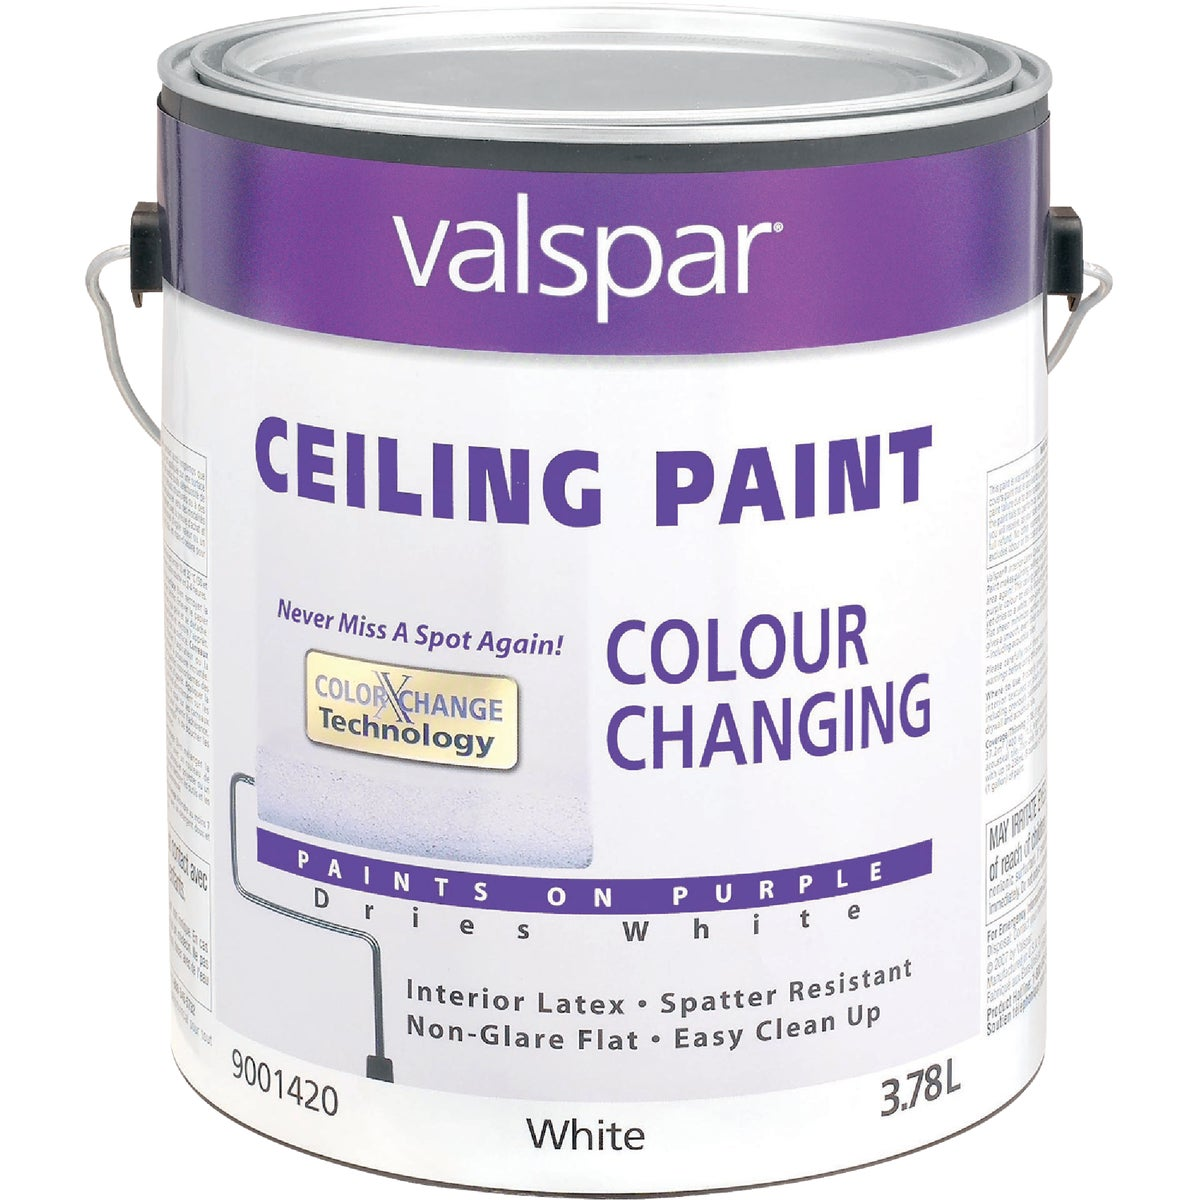 COLOR CHNG CEILING PAINT - 027.0001420.007 by Valspar Corp